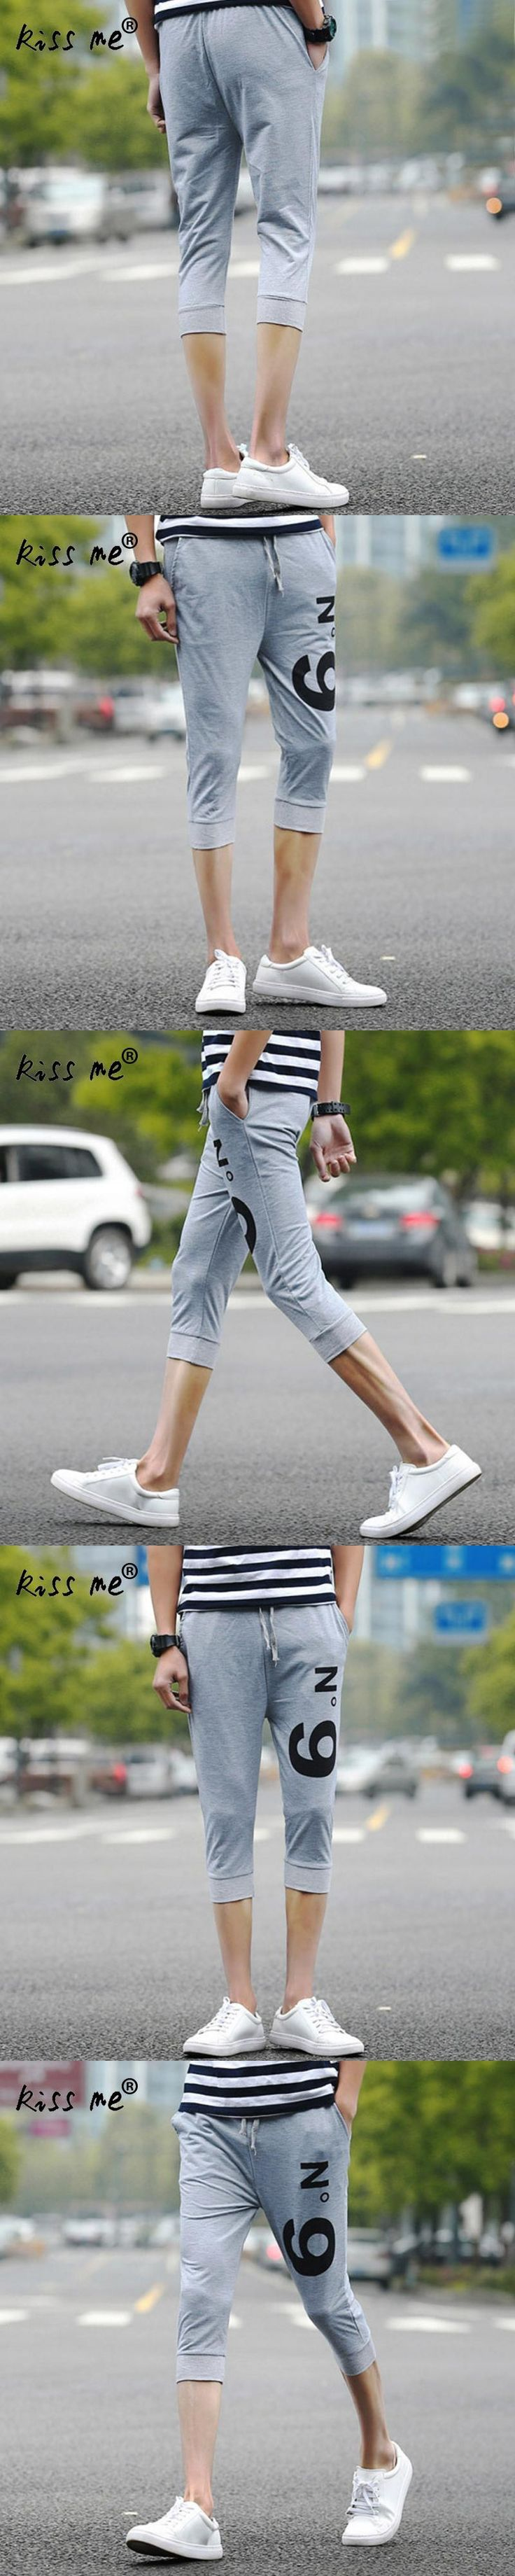 Summer style casual Skinny shorts men slim Drawstring shorts homme male capris knee length trousers all-match brand clothing